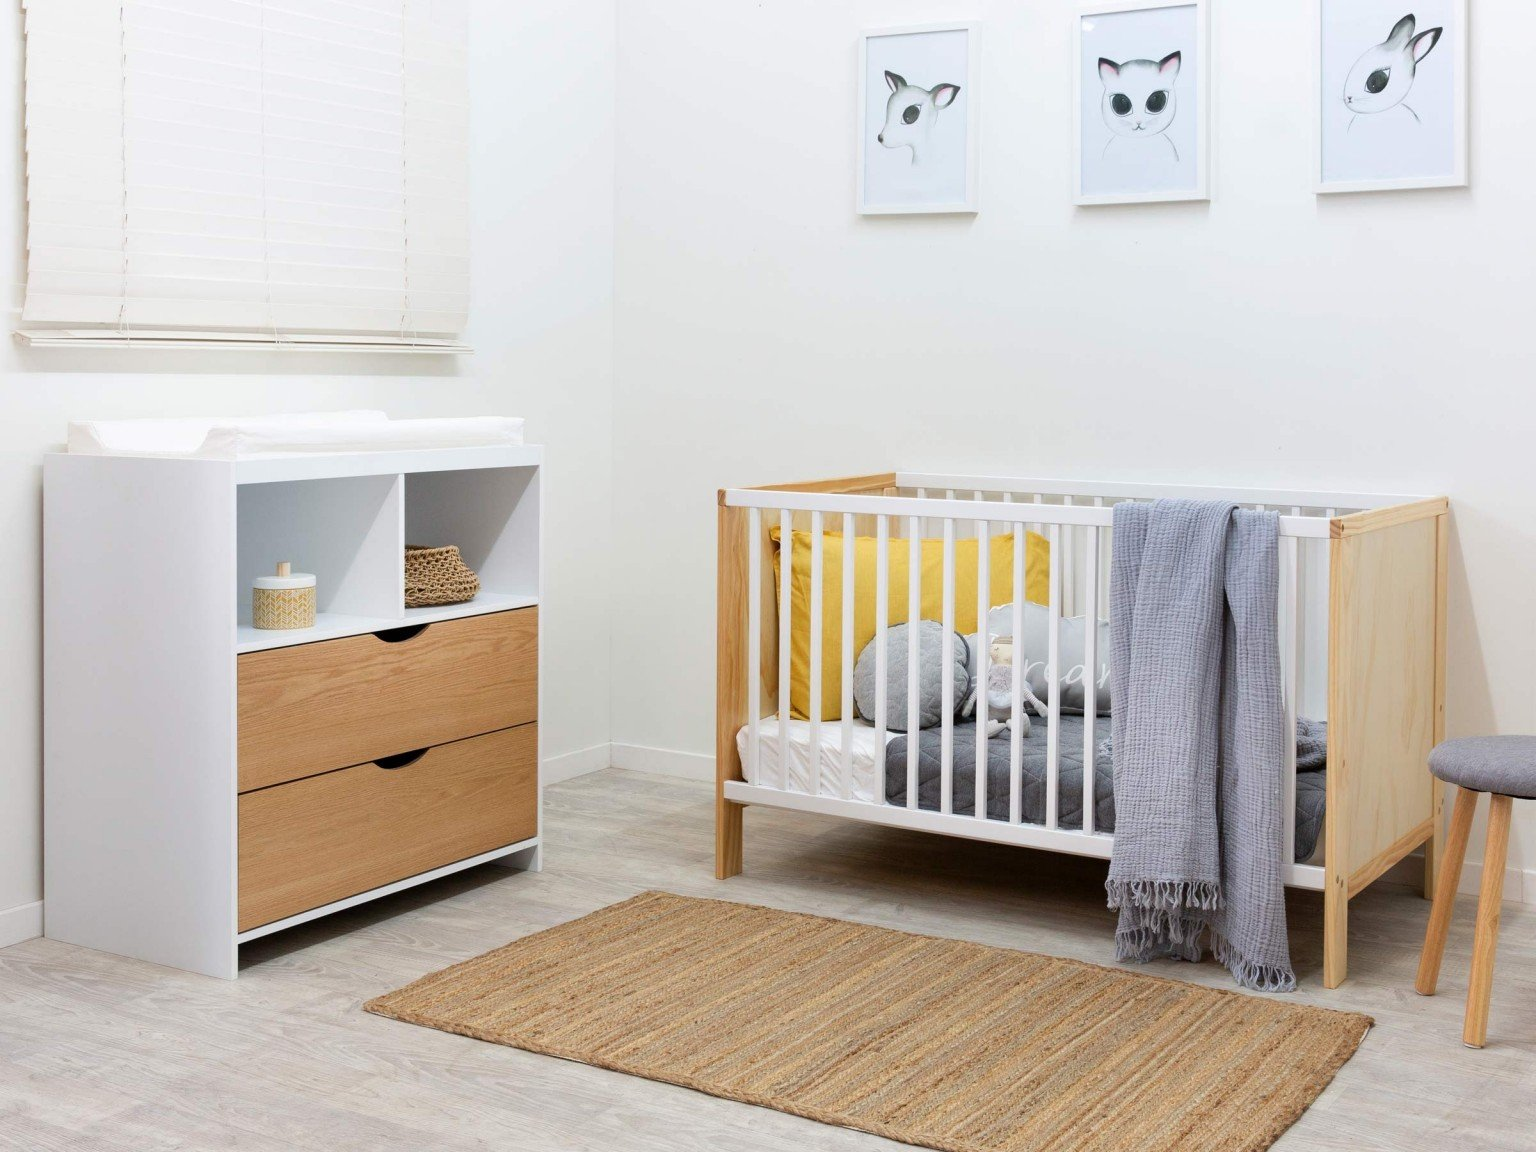 baby room package with cot and change table